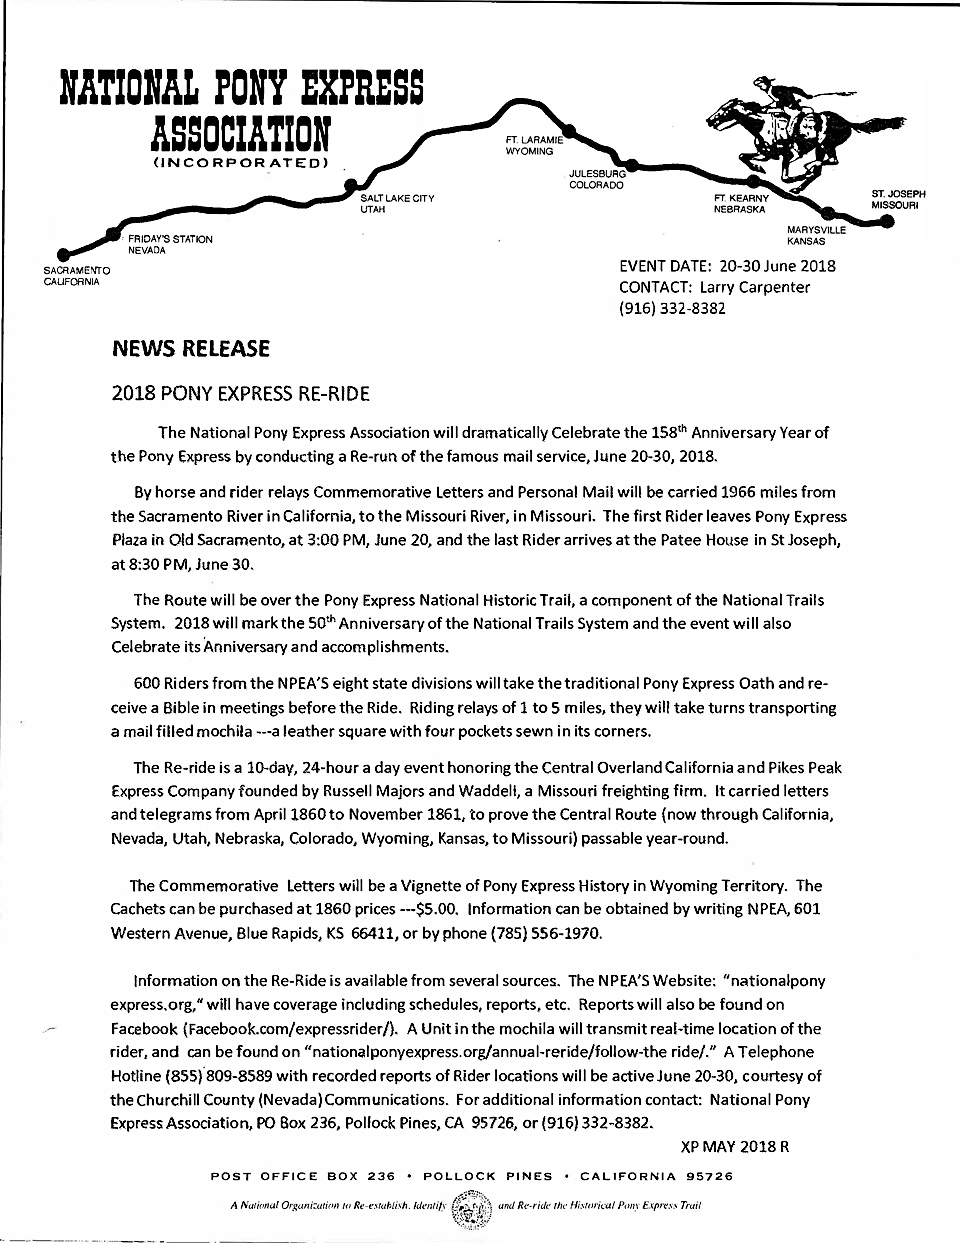 Image of the 2018 Pony Express Re-Ride News Release